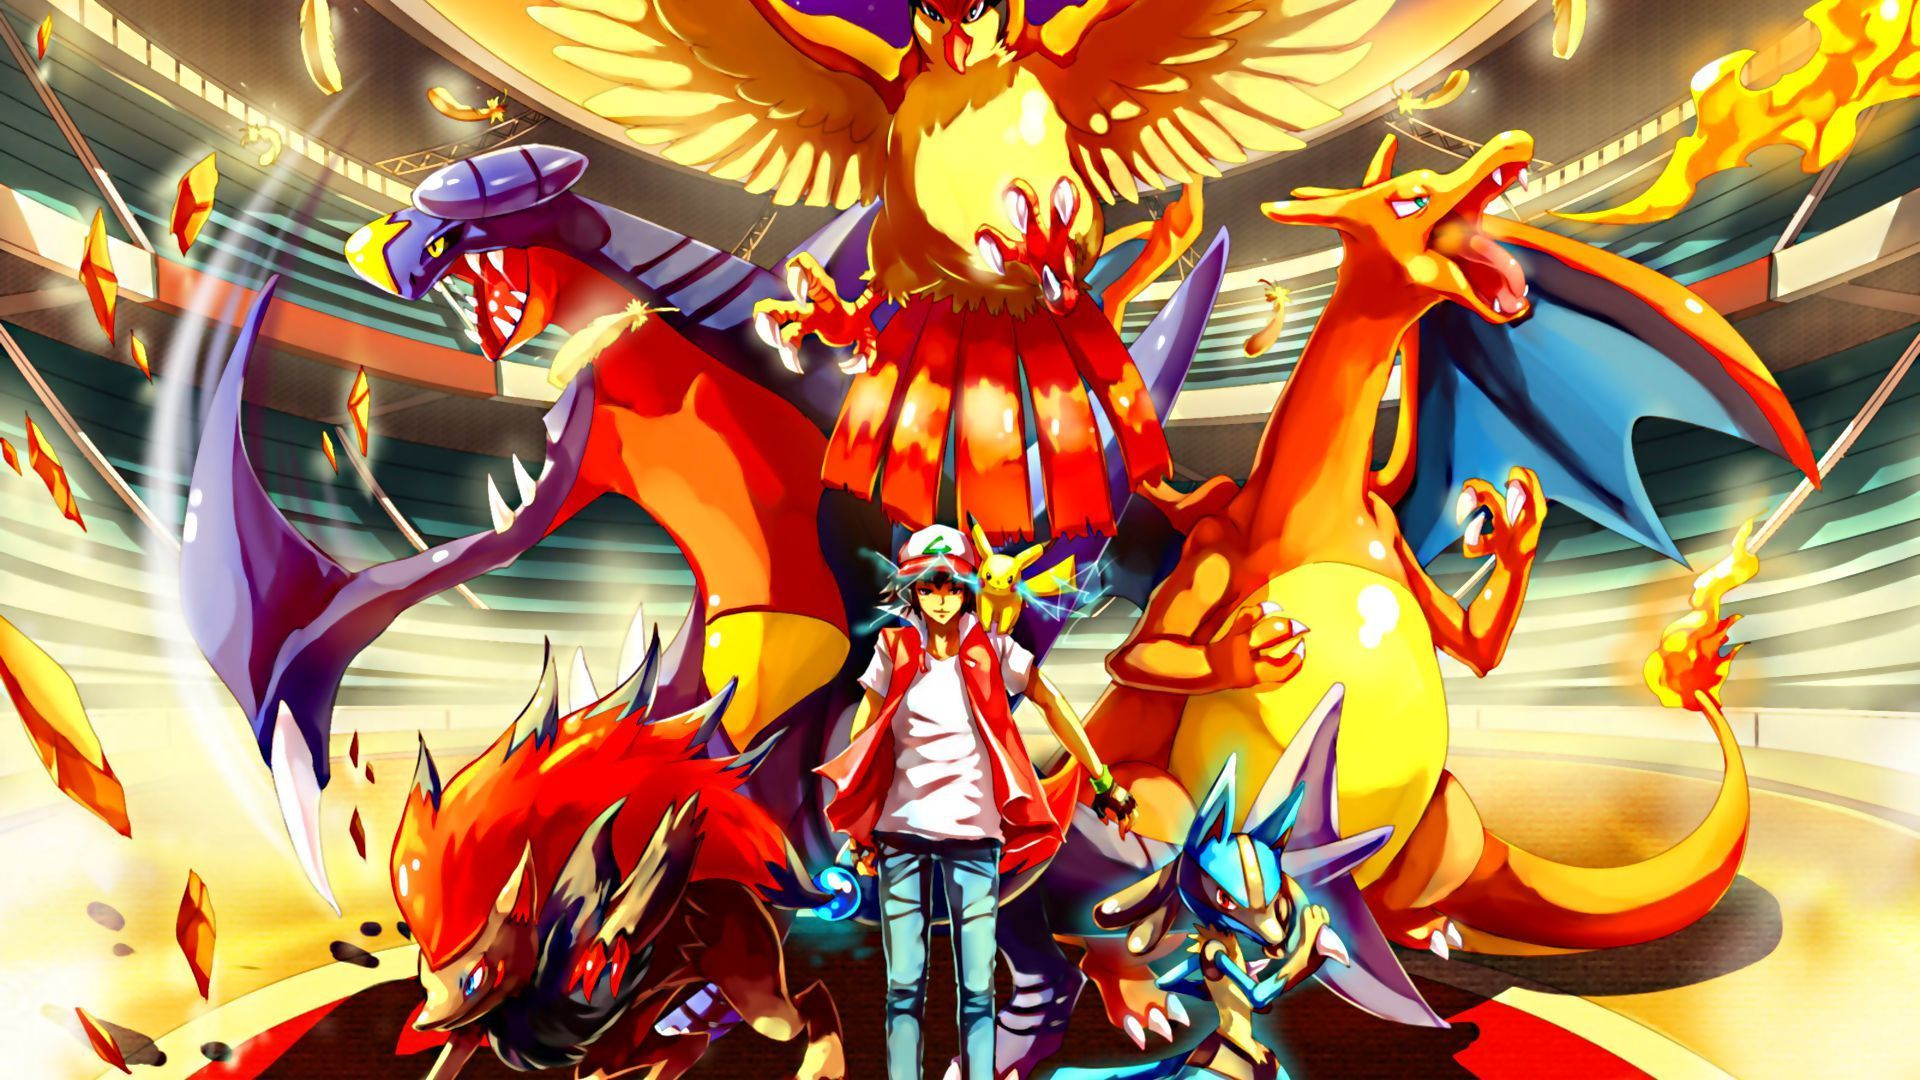 Wallpaper download pokemon - Pokemon Wallpapers Free Download 2048 1152 Free Download Pokemon Wallpapers 53 Wallpapers